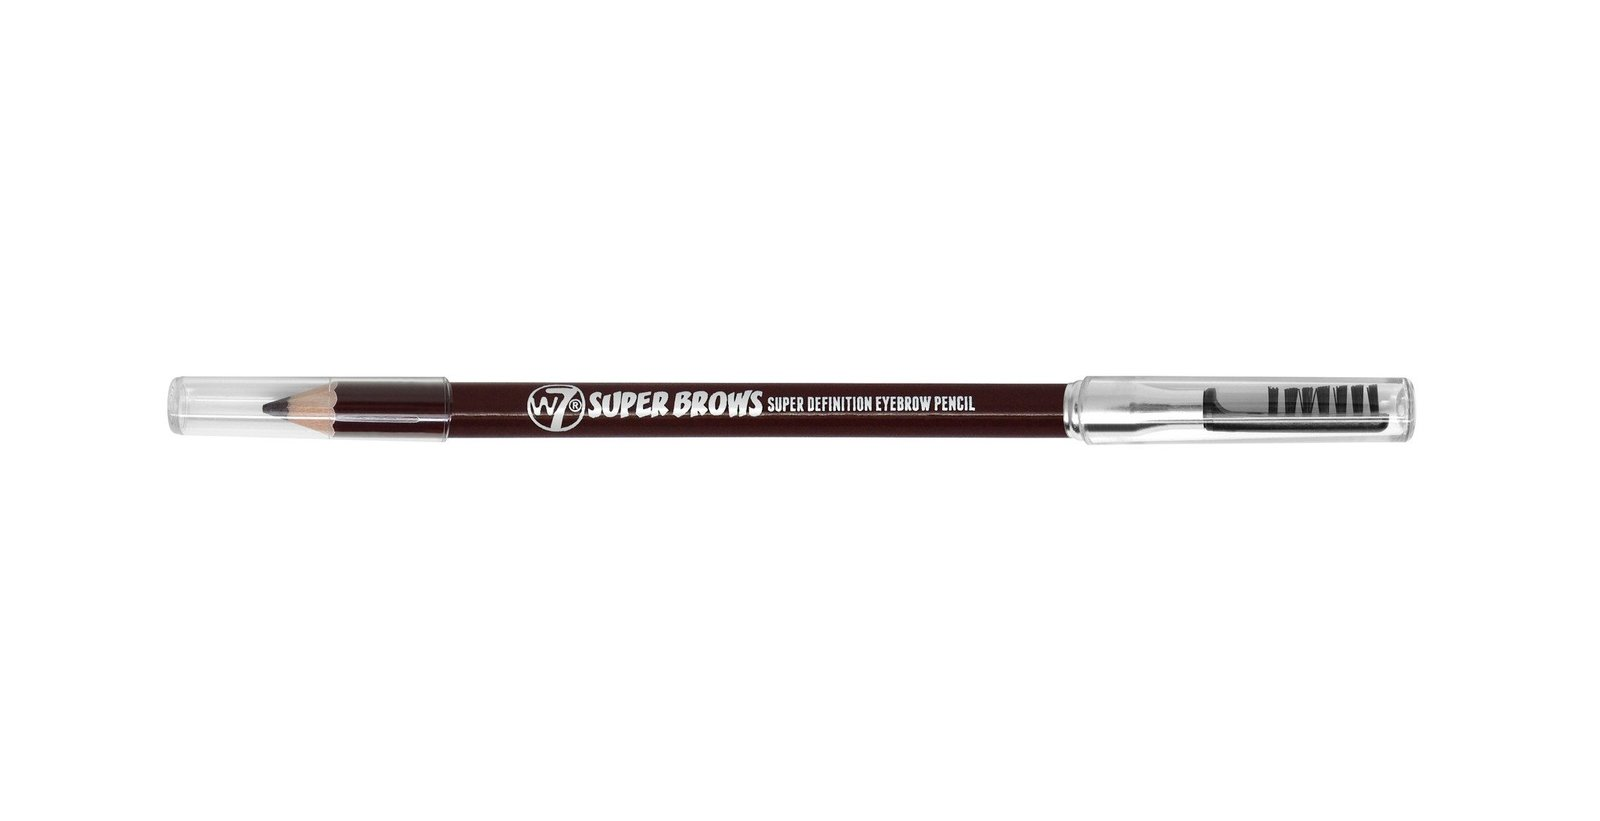 W7 Super Brows Pencil (Dark Brown) image